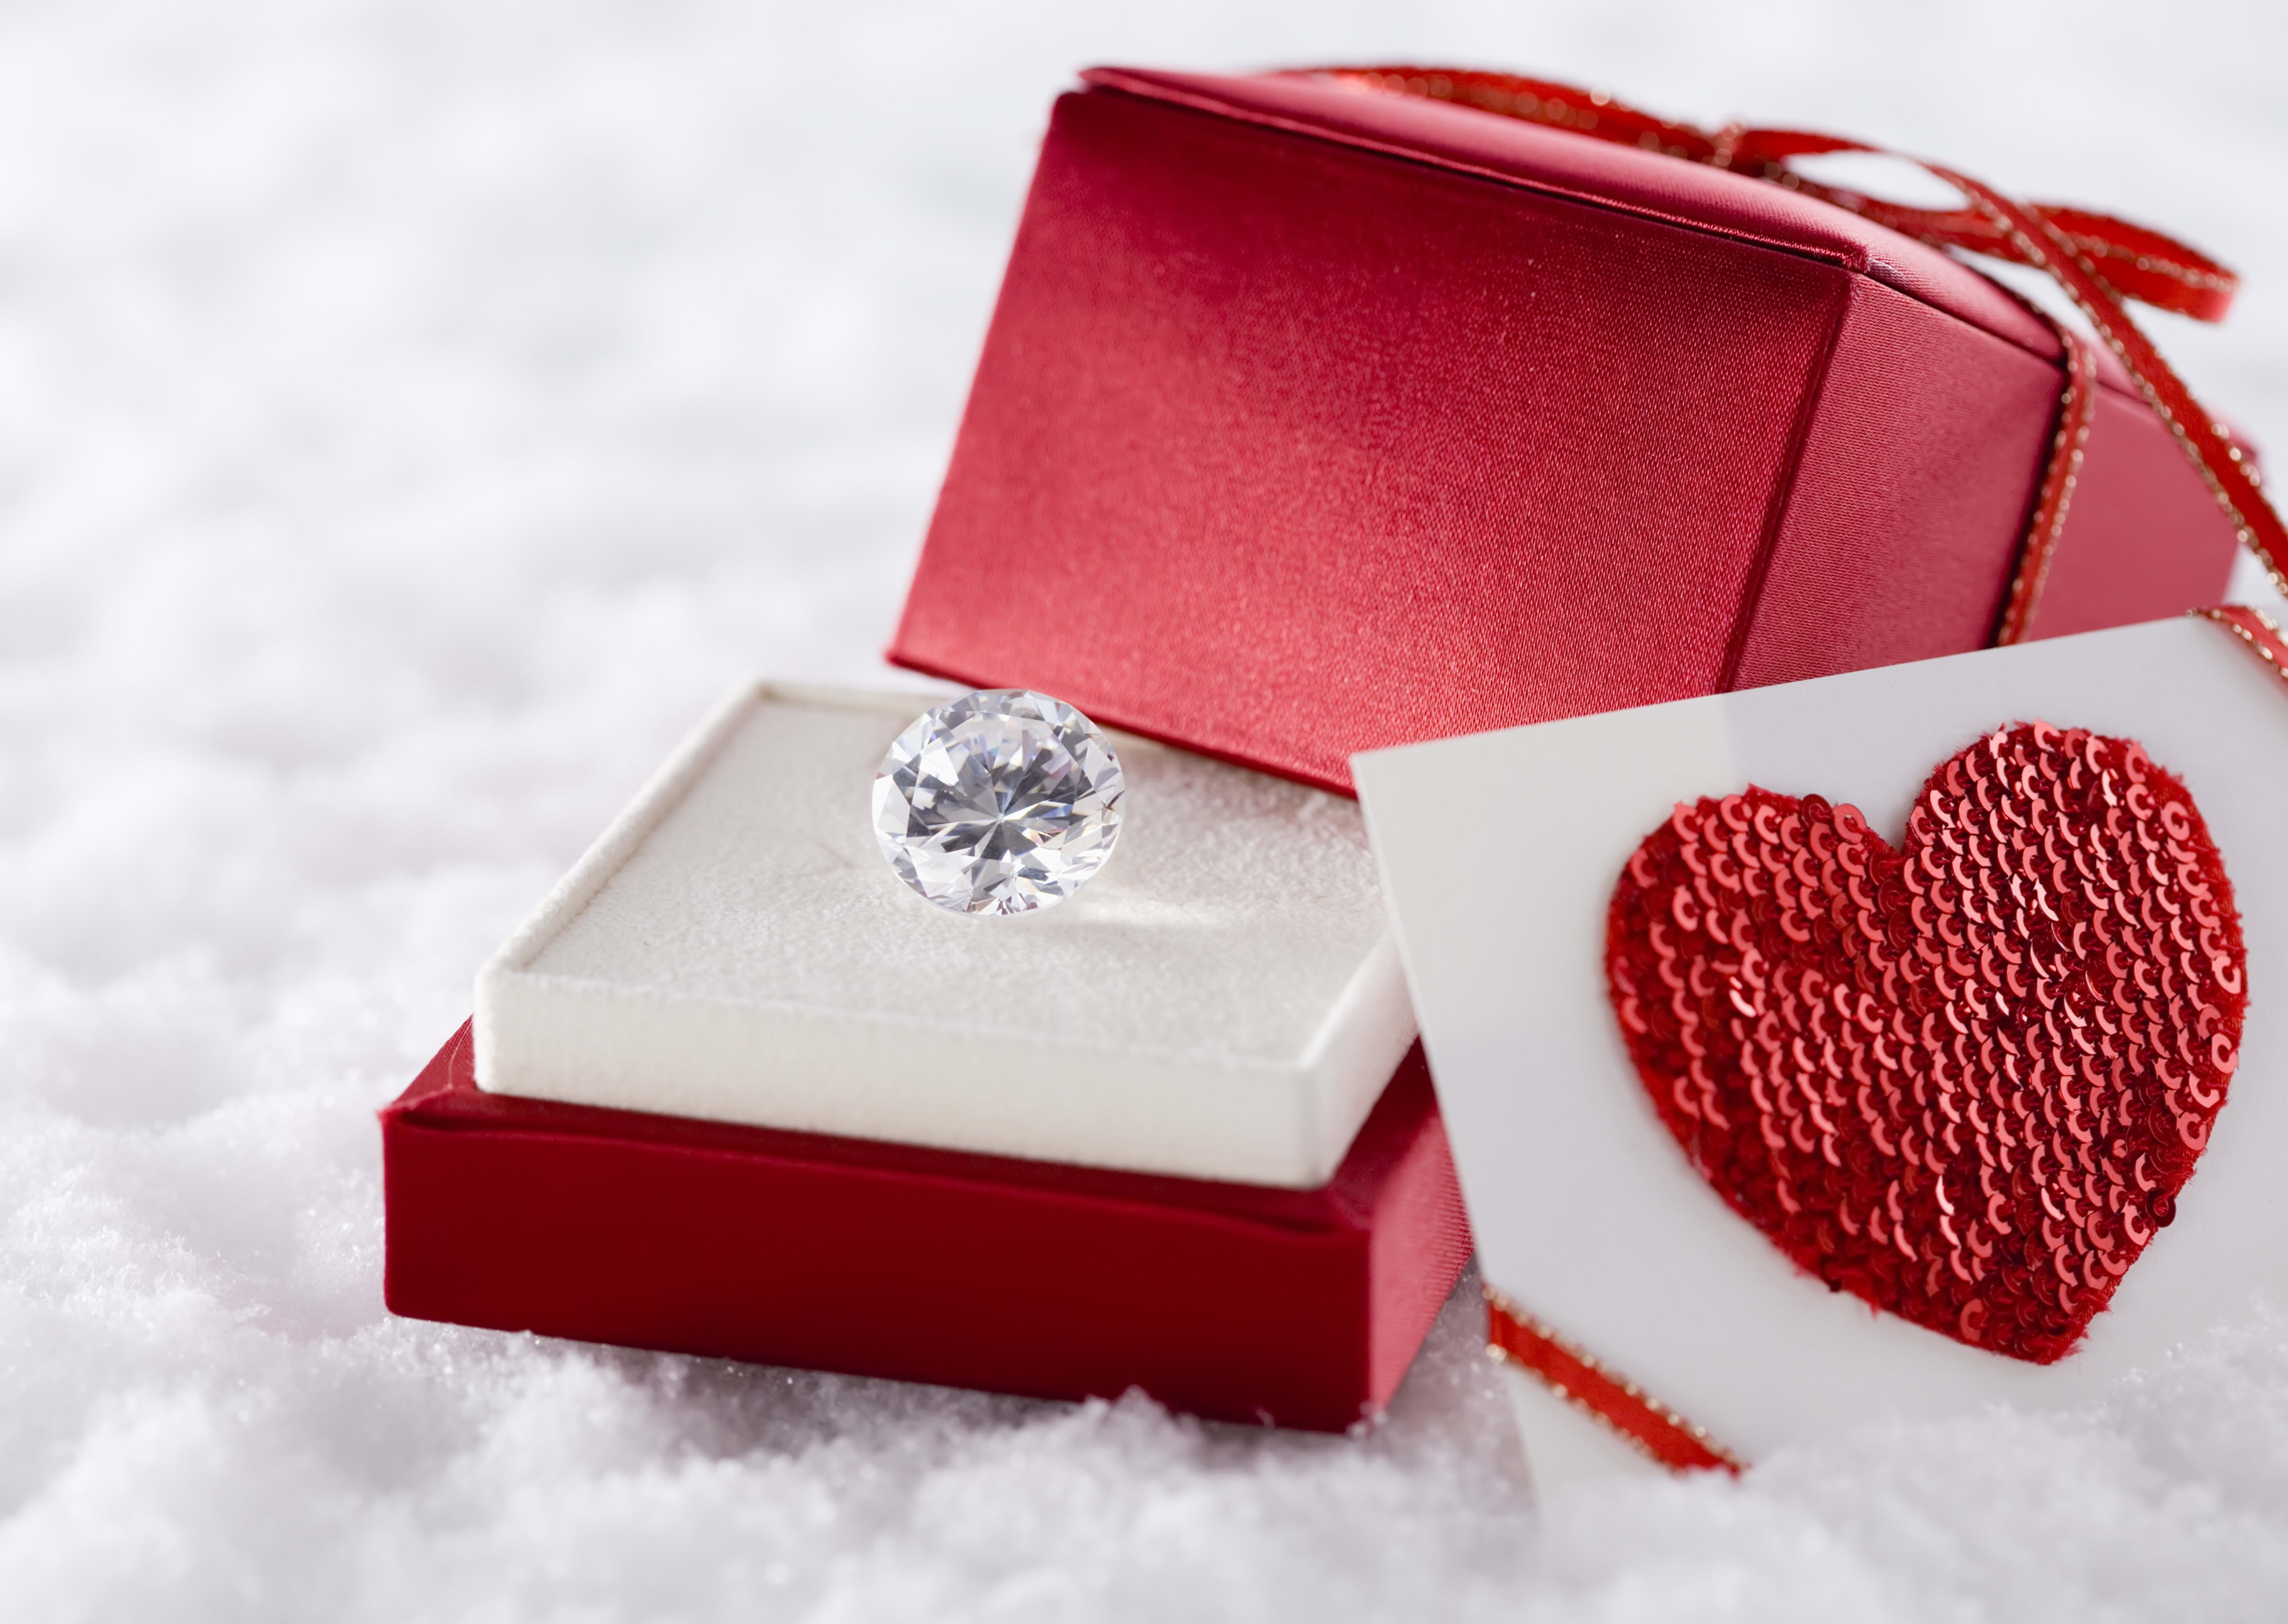 84675 download wallpaper Love, Diamond, Box, Heart, Snow screensavers and pictures for free